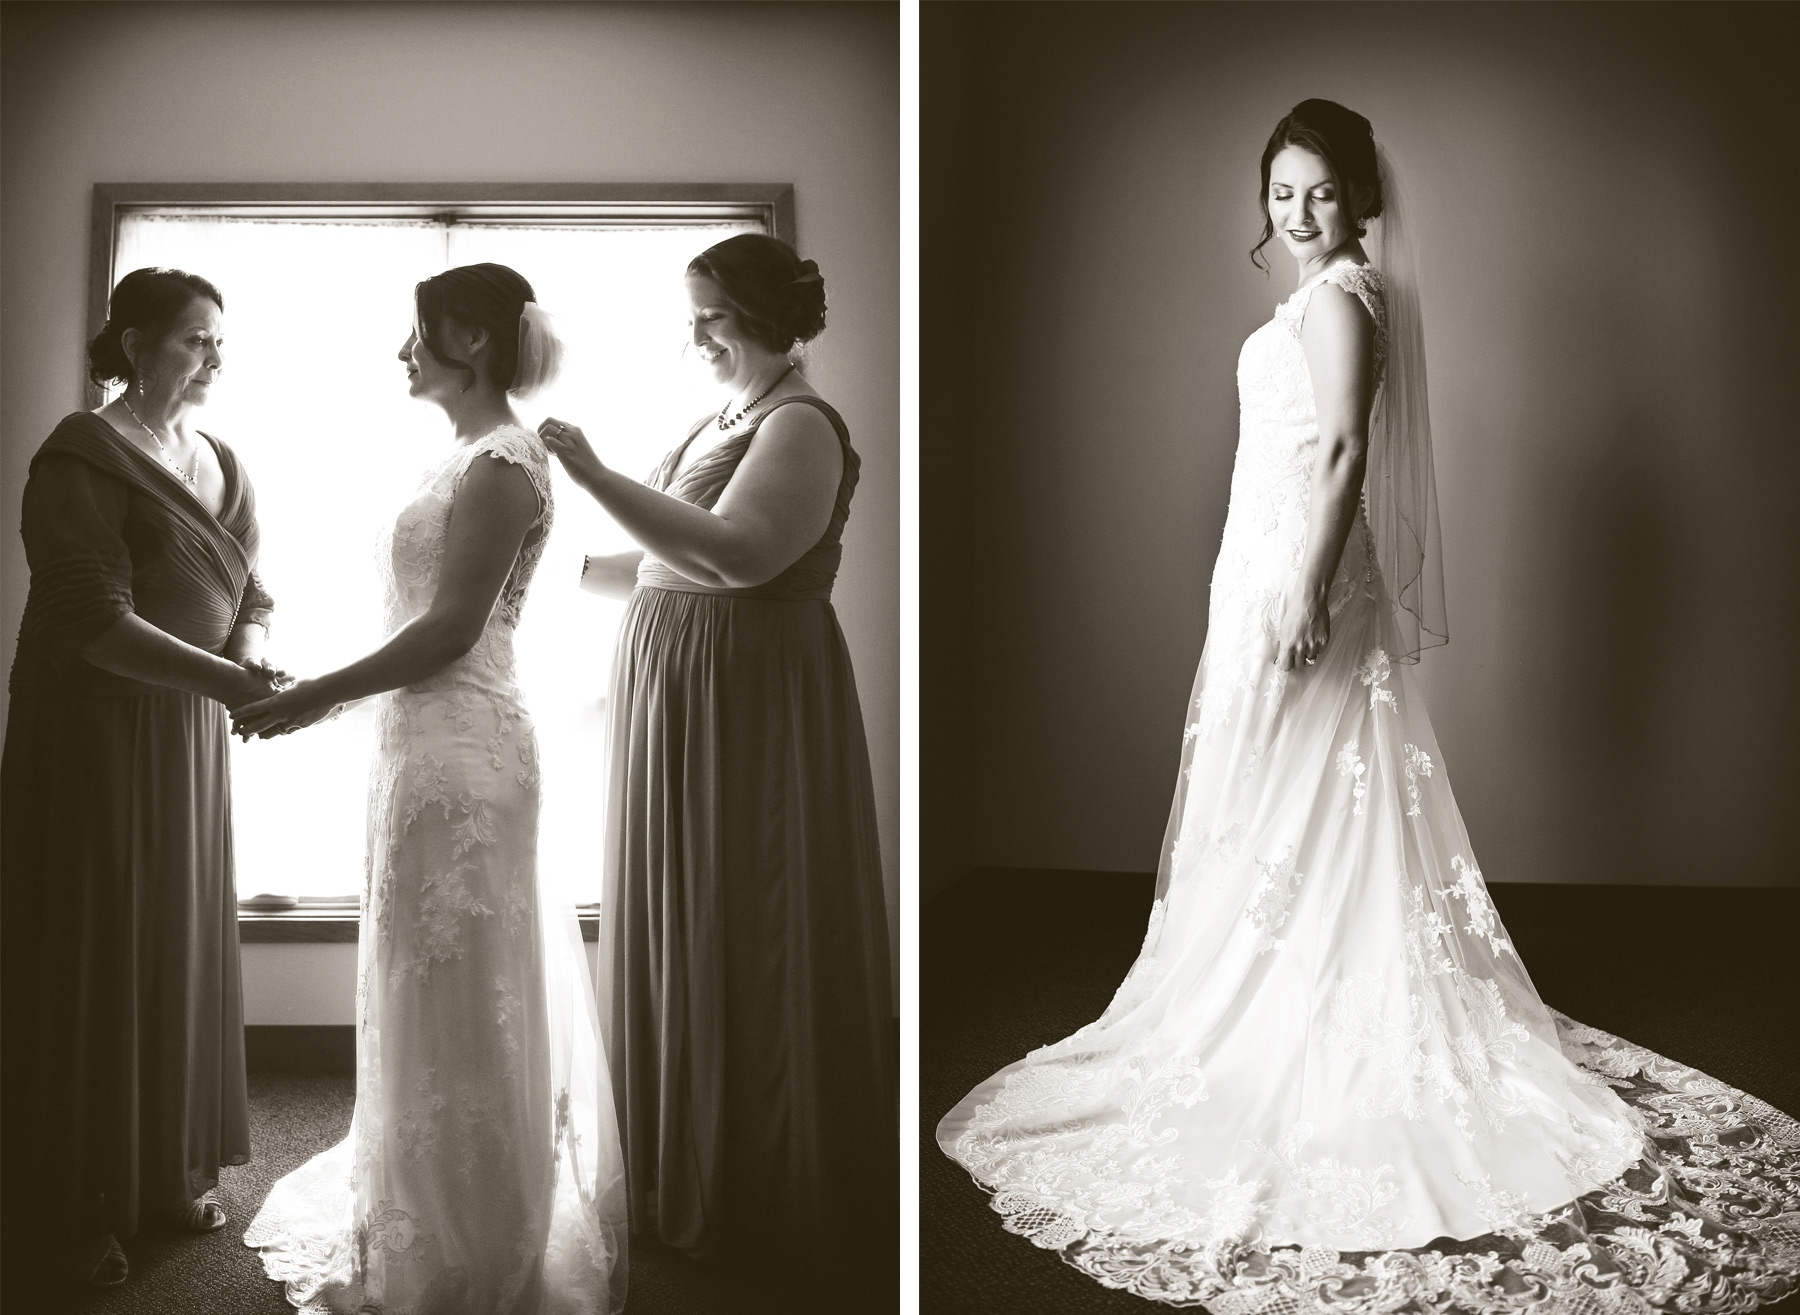 01-Minneapolis-Minnesota-Wedding-Photography-by-Vick-Photography-Wedding-Morning-Bride-Dress-Courtney-and-Kevin.jpg